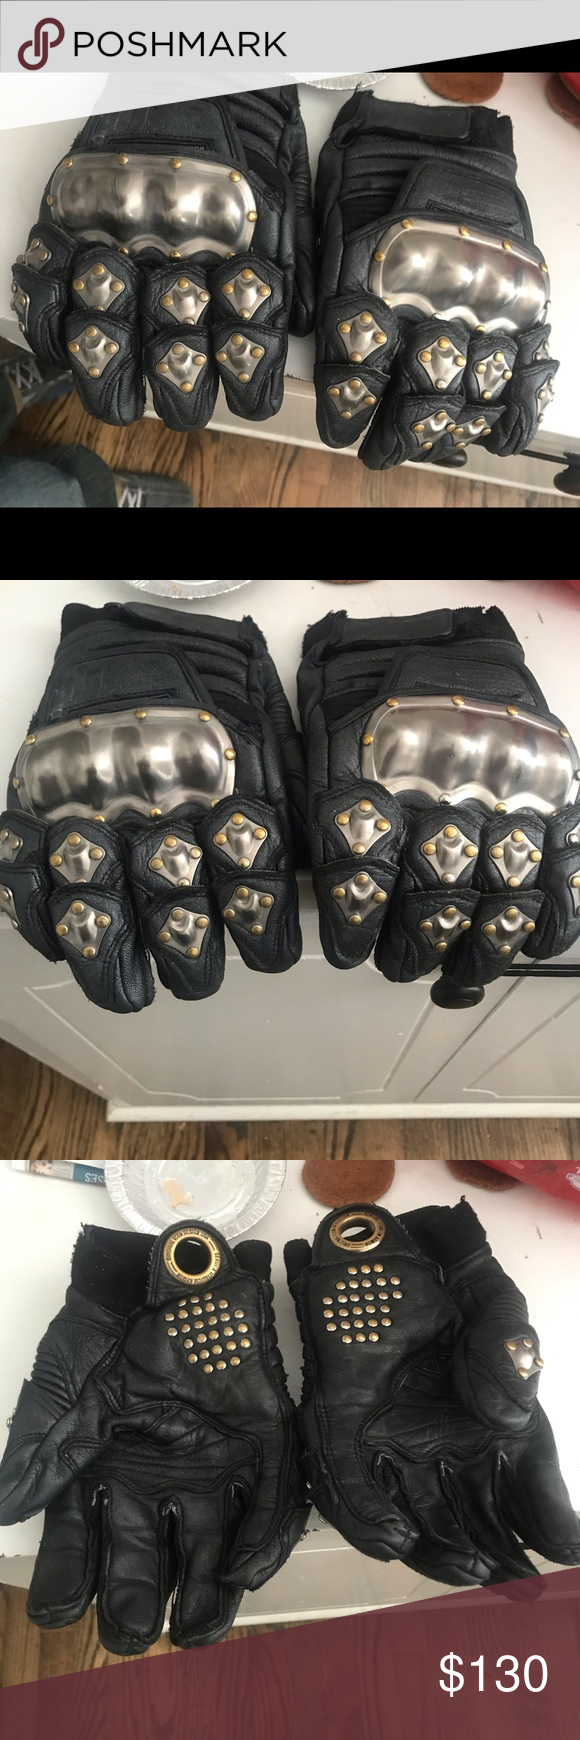 iCON motorcycle leather gloves Leather gloves